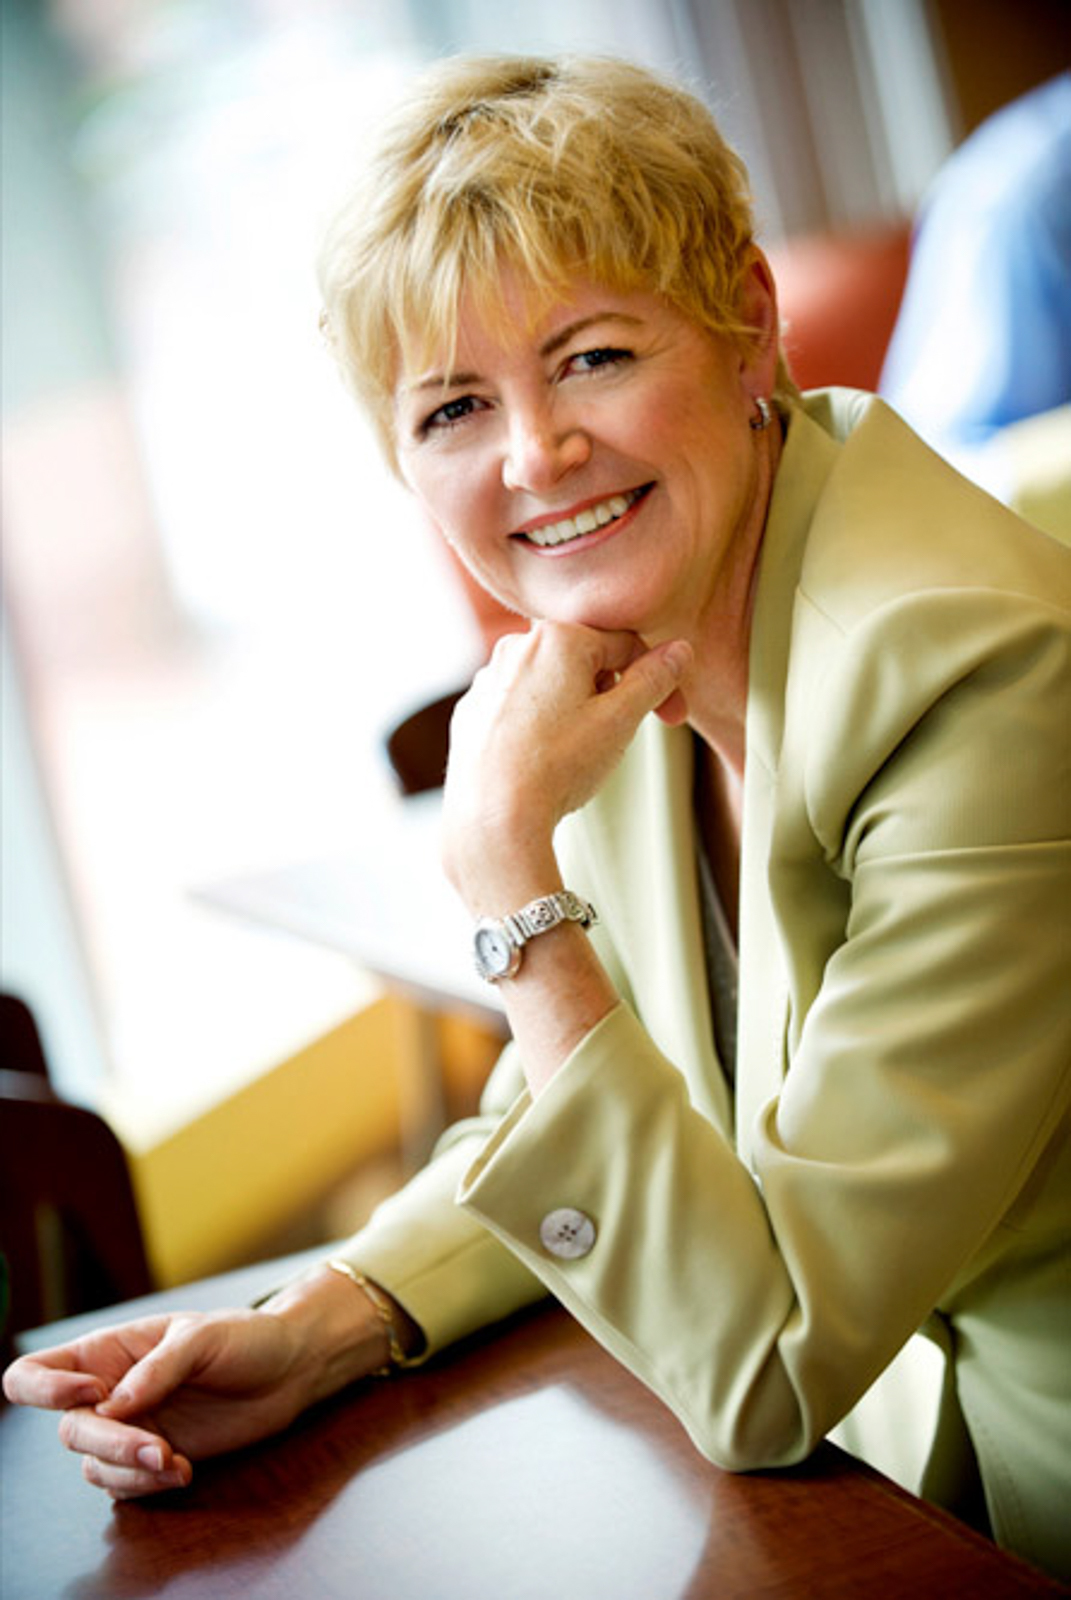 Portrait of business woman smiling, leaning on a desk